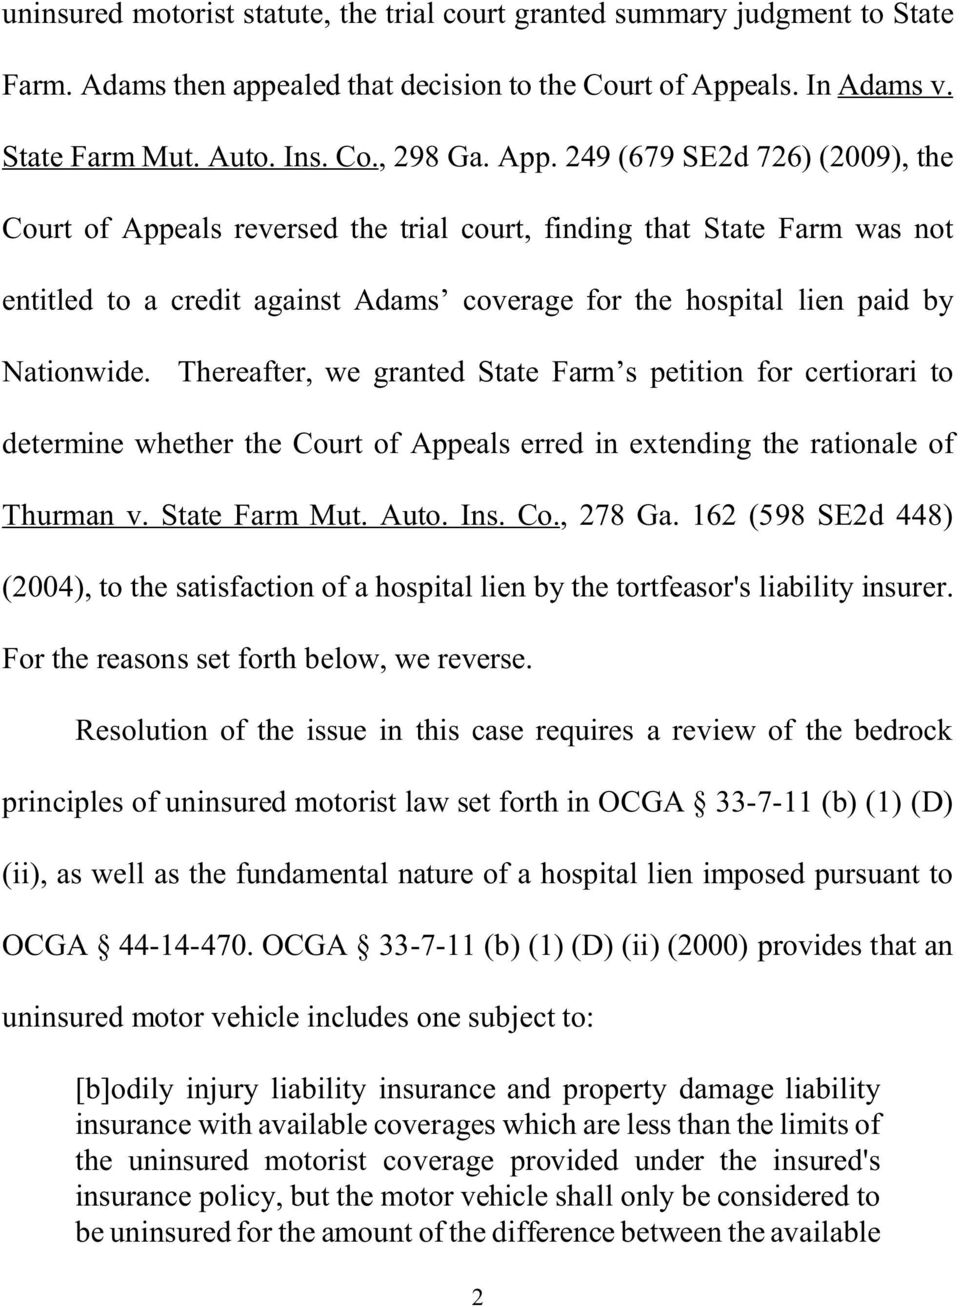 249 (679 SE2d 726) (2009), the Court of Appeals reversed the trial court, finding that State Farm was not entitled to a credit against Adams coverage for the hospital lien paid by Nationwide.